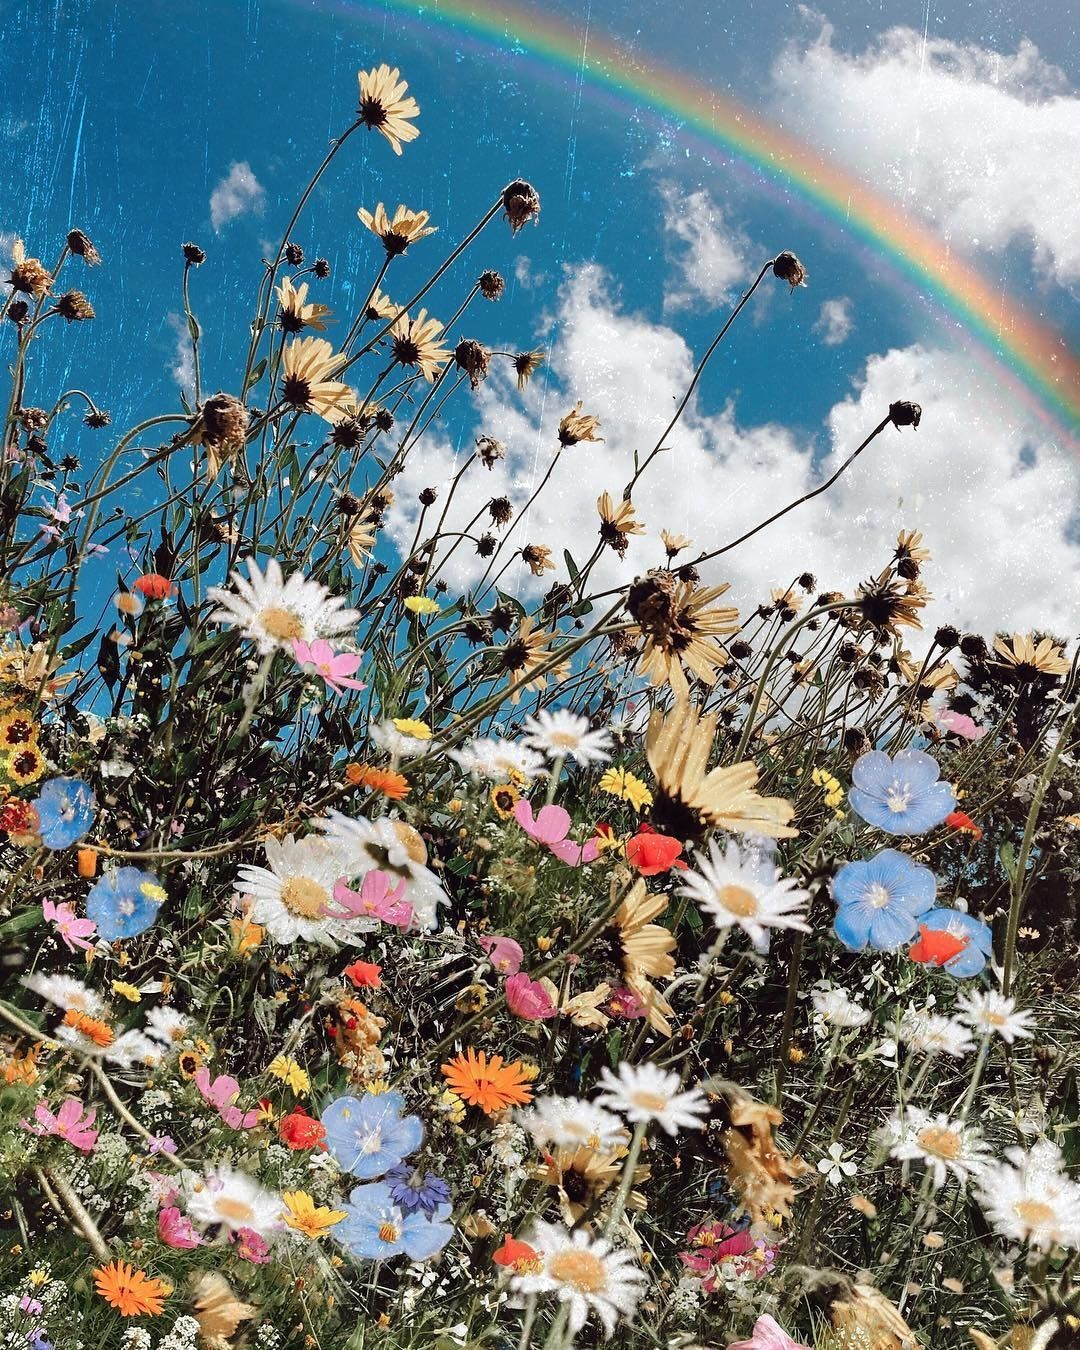 The Boho Legend On Instagram Heavy Dose Of Wildflowers And Rainbow For Everyone Today Flower Aesthetic Sunflower Wallpaper Aesthetic Iphone Wallpaper